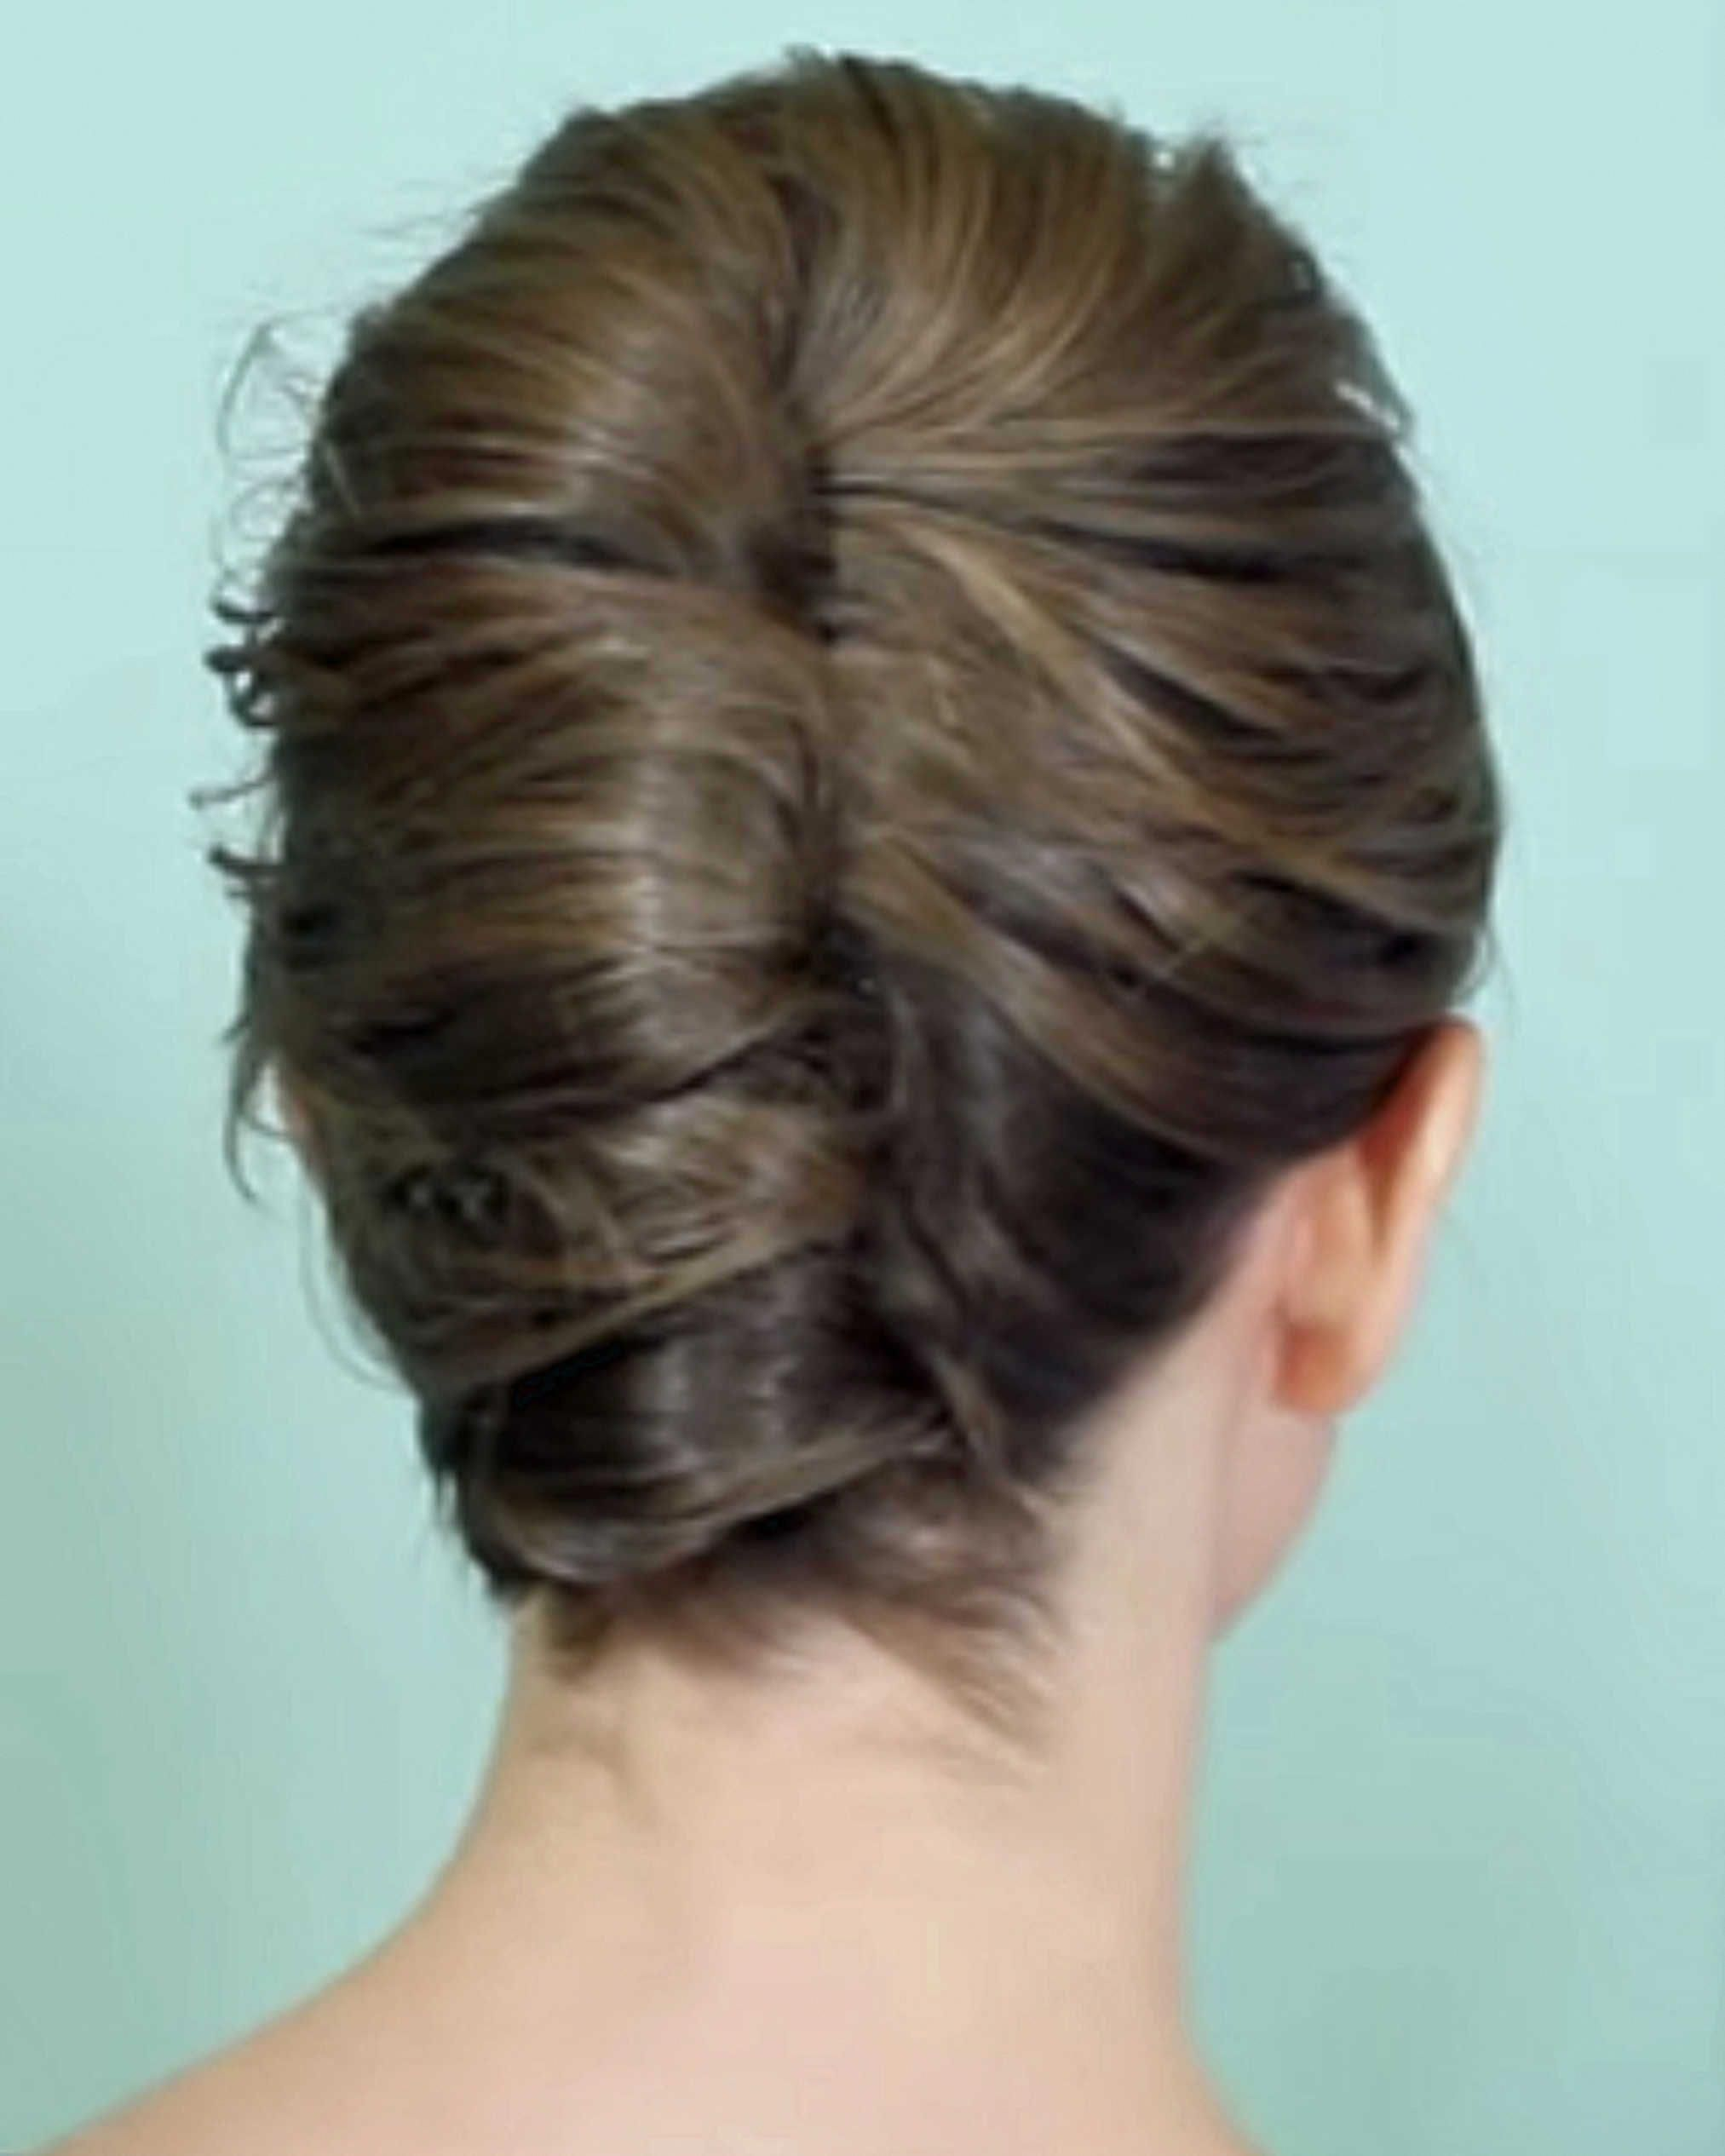 A Simple French Twist For Short Hair It S An Everyday Updo Really Shorthairwedding French Twist Hair Bridemaids Hairstyles Nurse Hairstyles